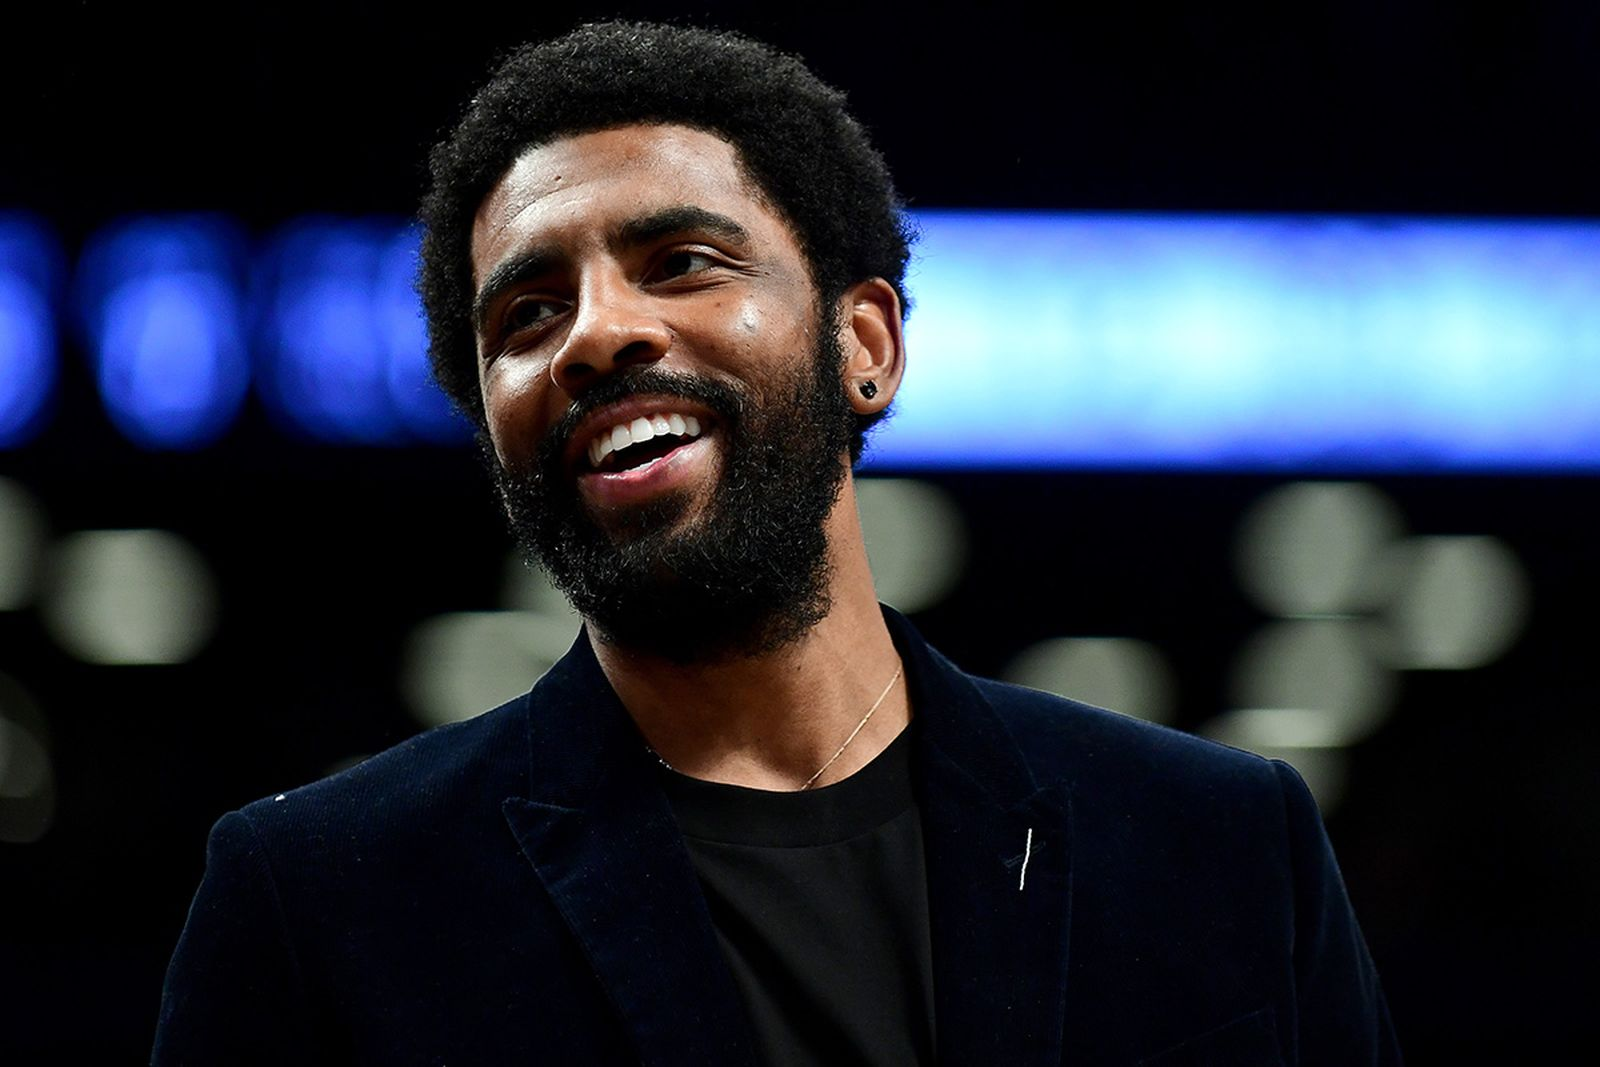 Kyrie Irving smiling